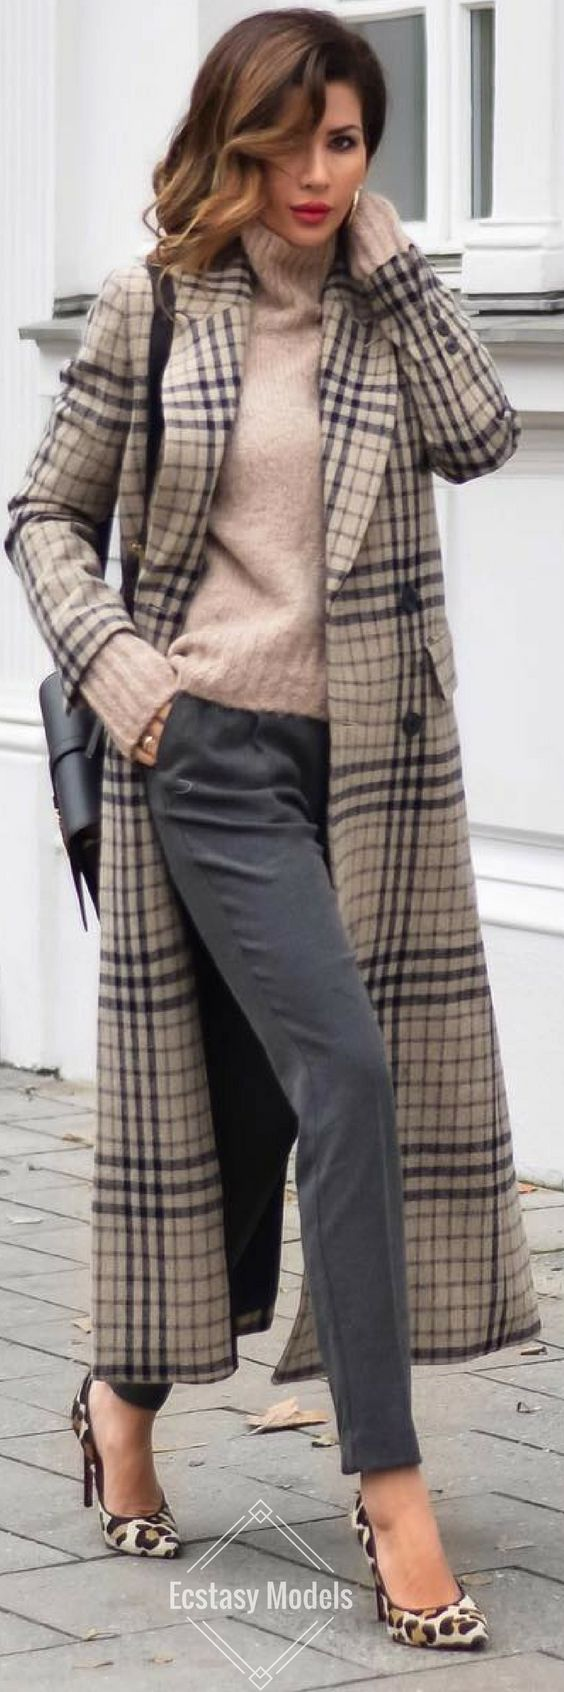 Staying toasty in cool wool // Wool Coat by Mango , ASOS Sweater , Heels by GIANVITO ROSSI , Bag by SAINT LAURENT, Mango Trousers //  Fashion Look by Short Stories & Skirts